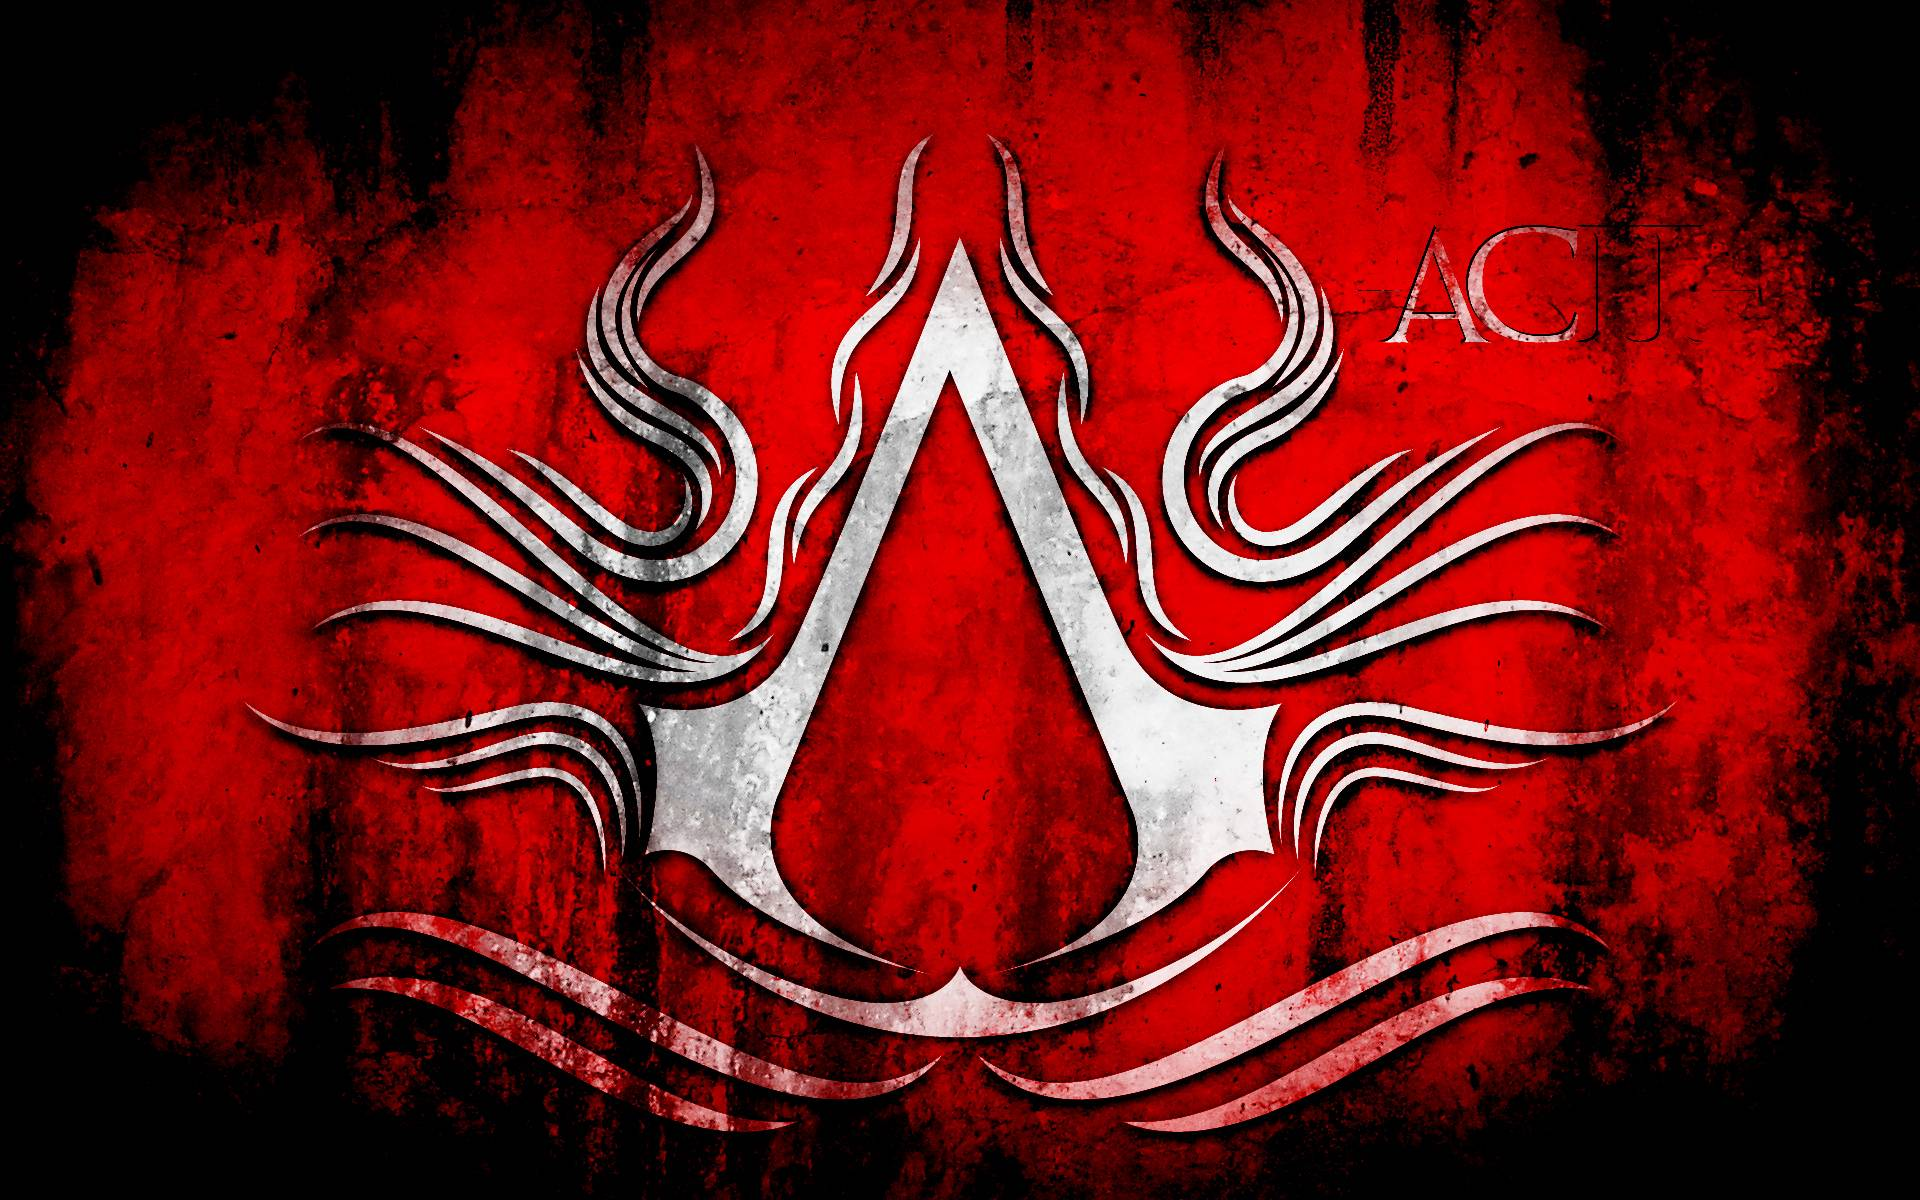 Assassin'-s Creed 3 v1.1.2 - Free full version android apk ...